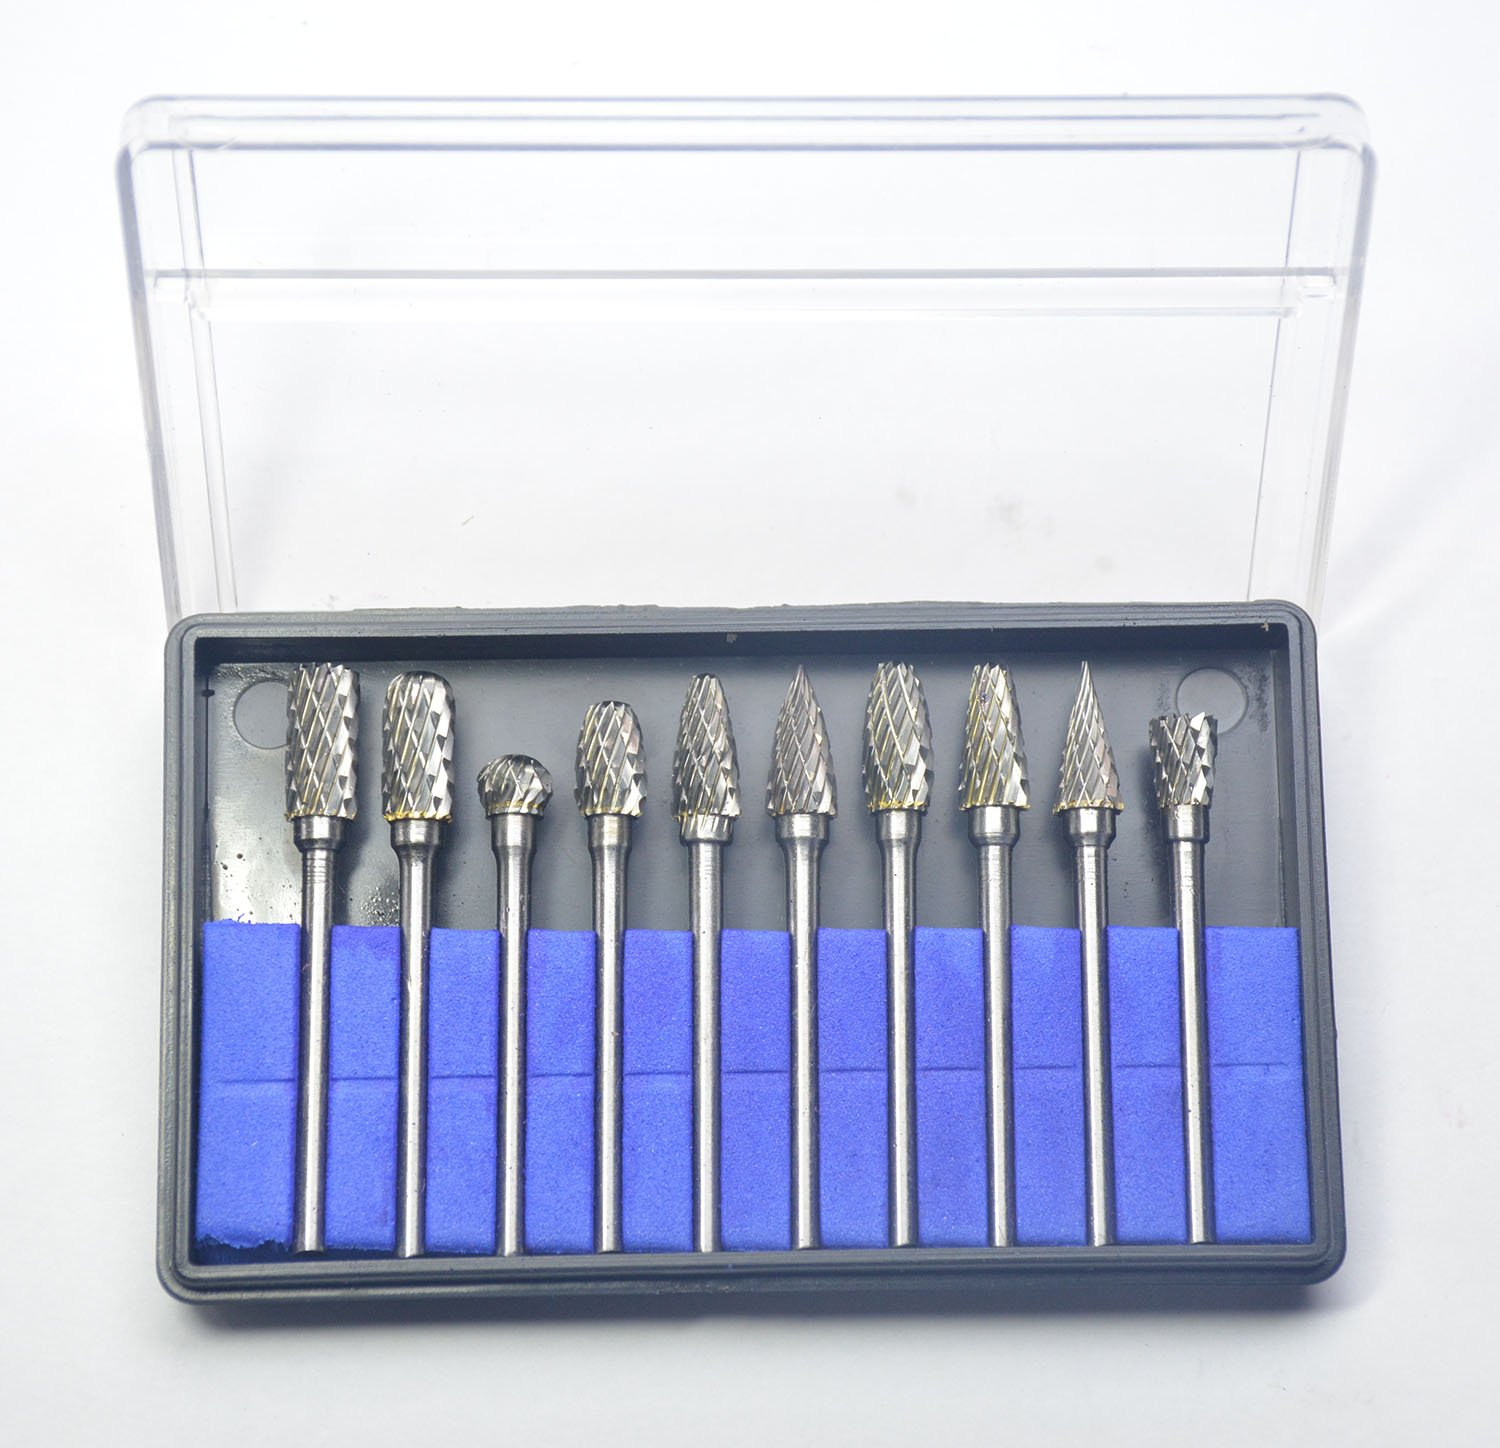 KOTVTM 10PCS Solid Carbide Burrs for Rotary Drill Die Grinder Carving Tool Set